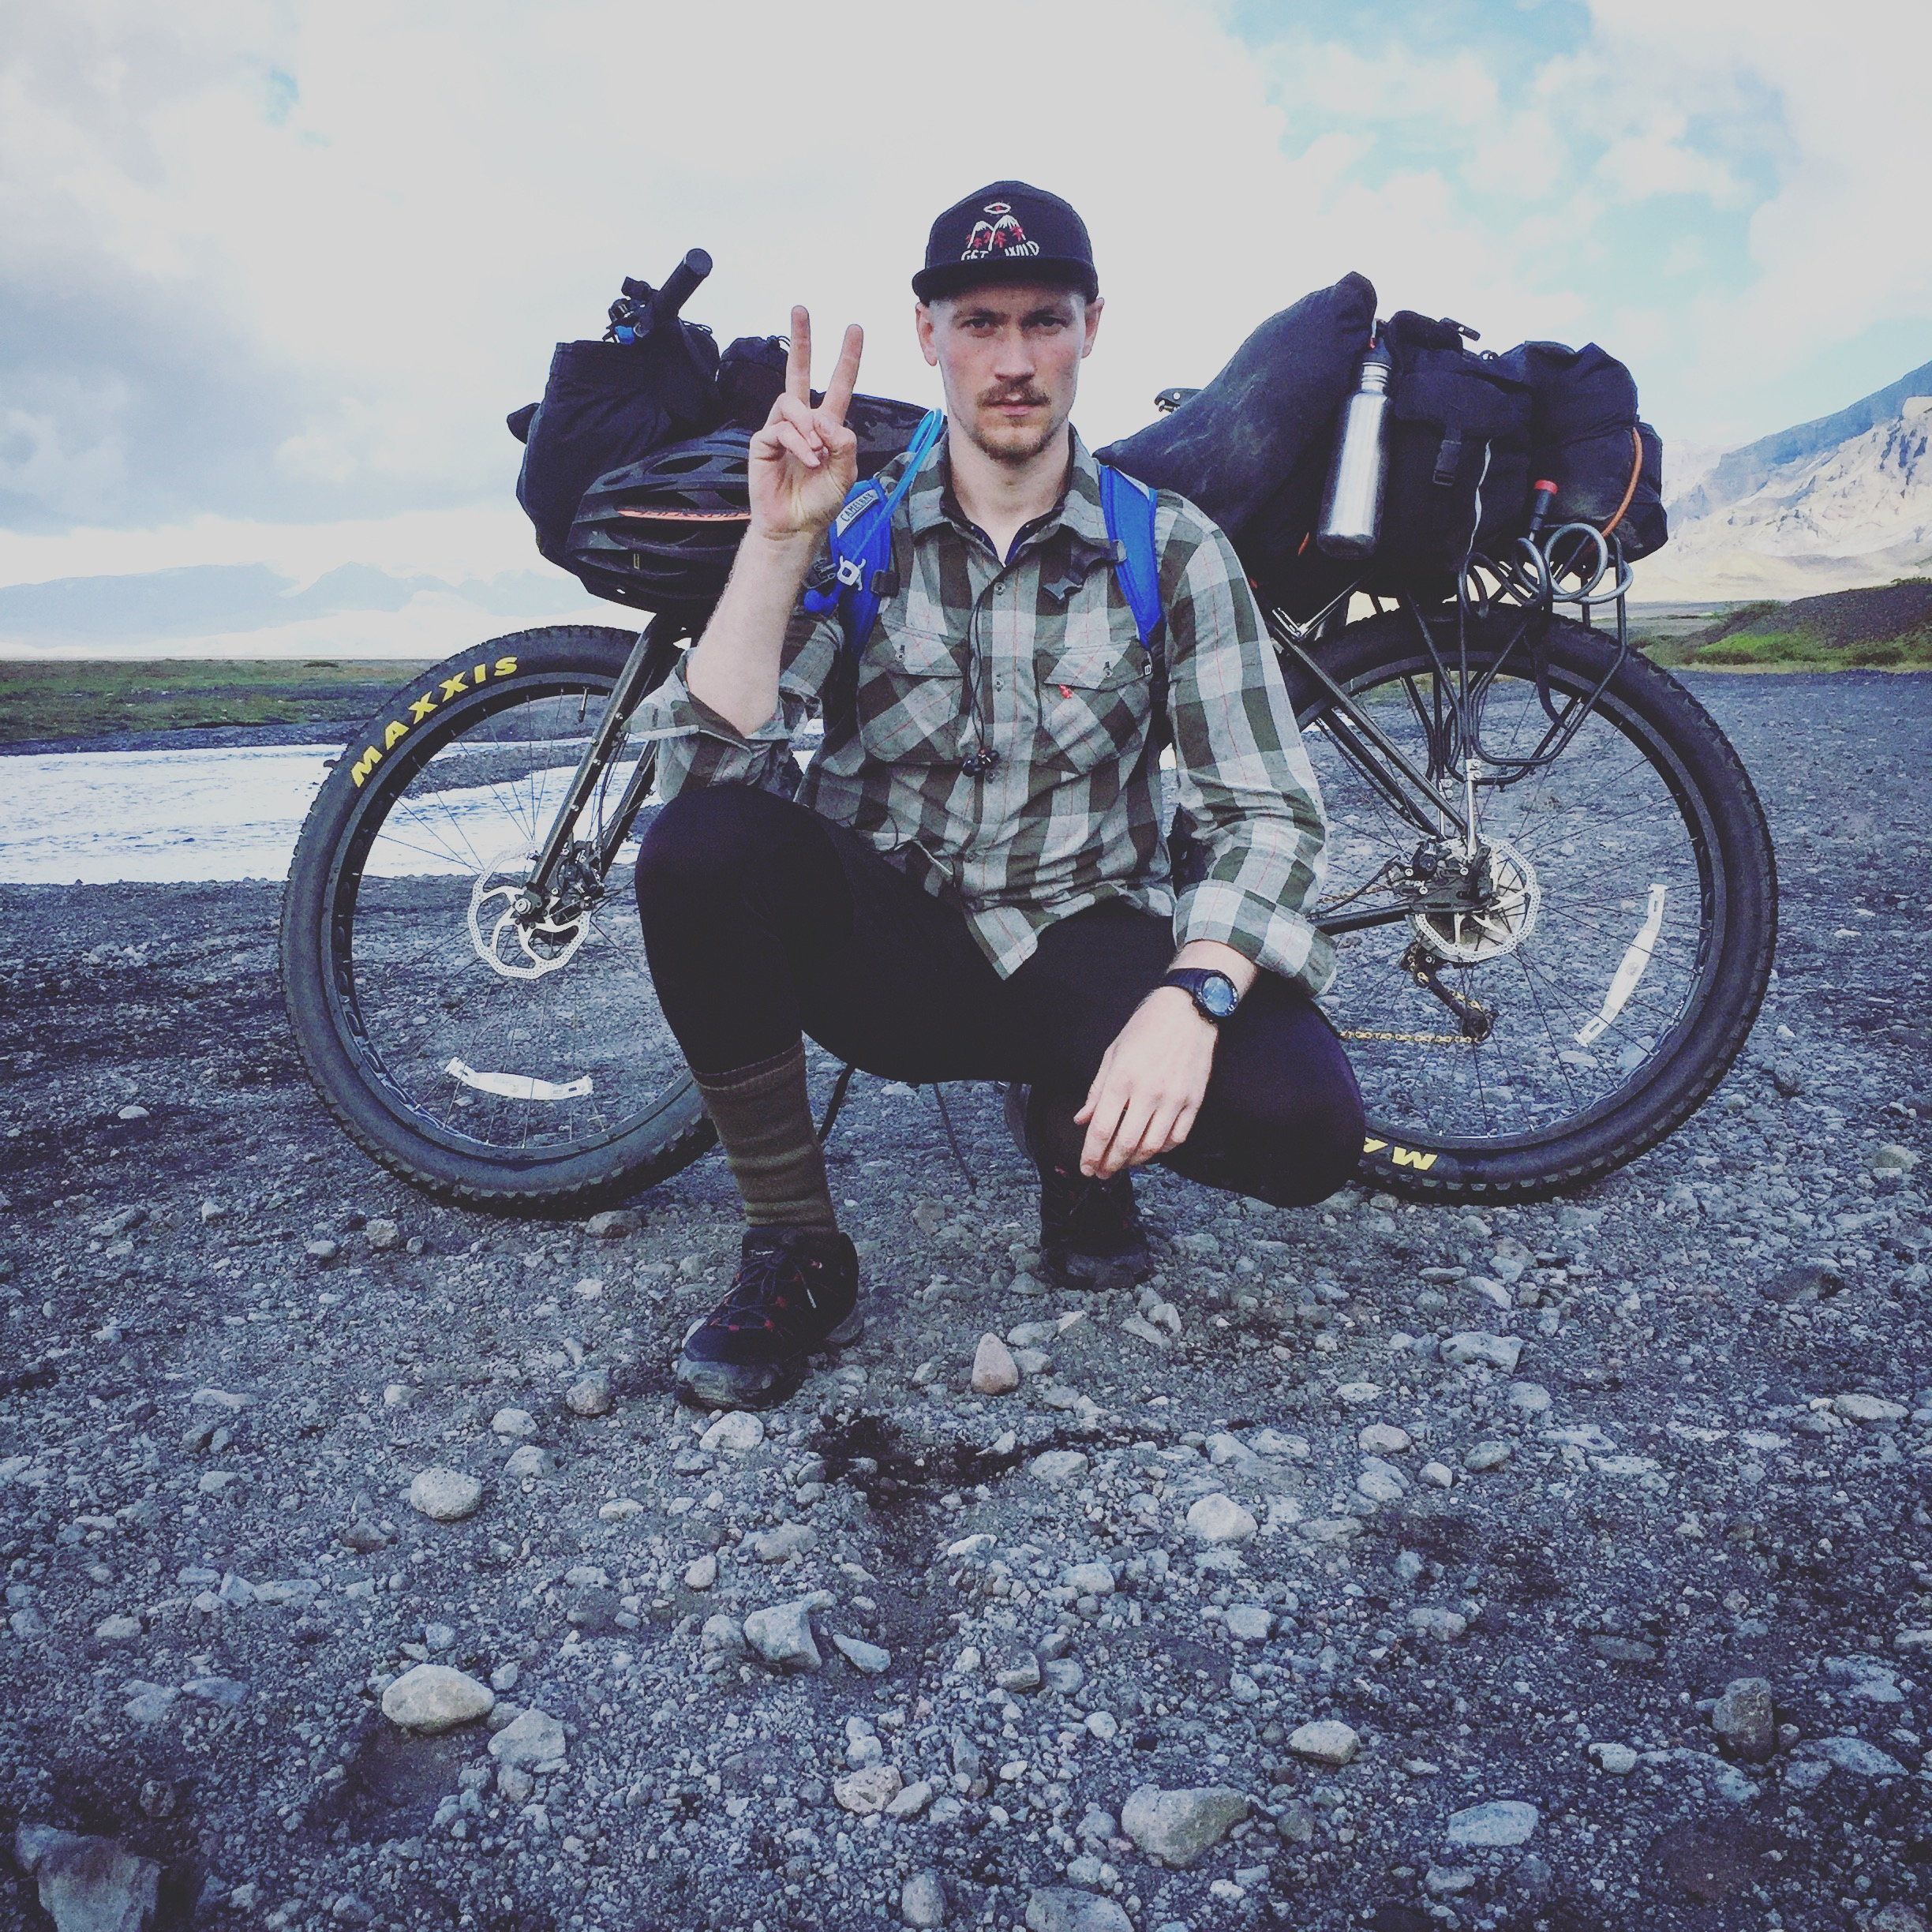 jack mac, bicycle touring apocalypse, bikepacking, bikepacking blog, cycling blog, bicycle touring, cyclist, adventure blog, travel more